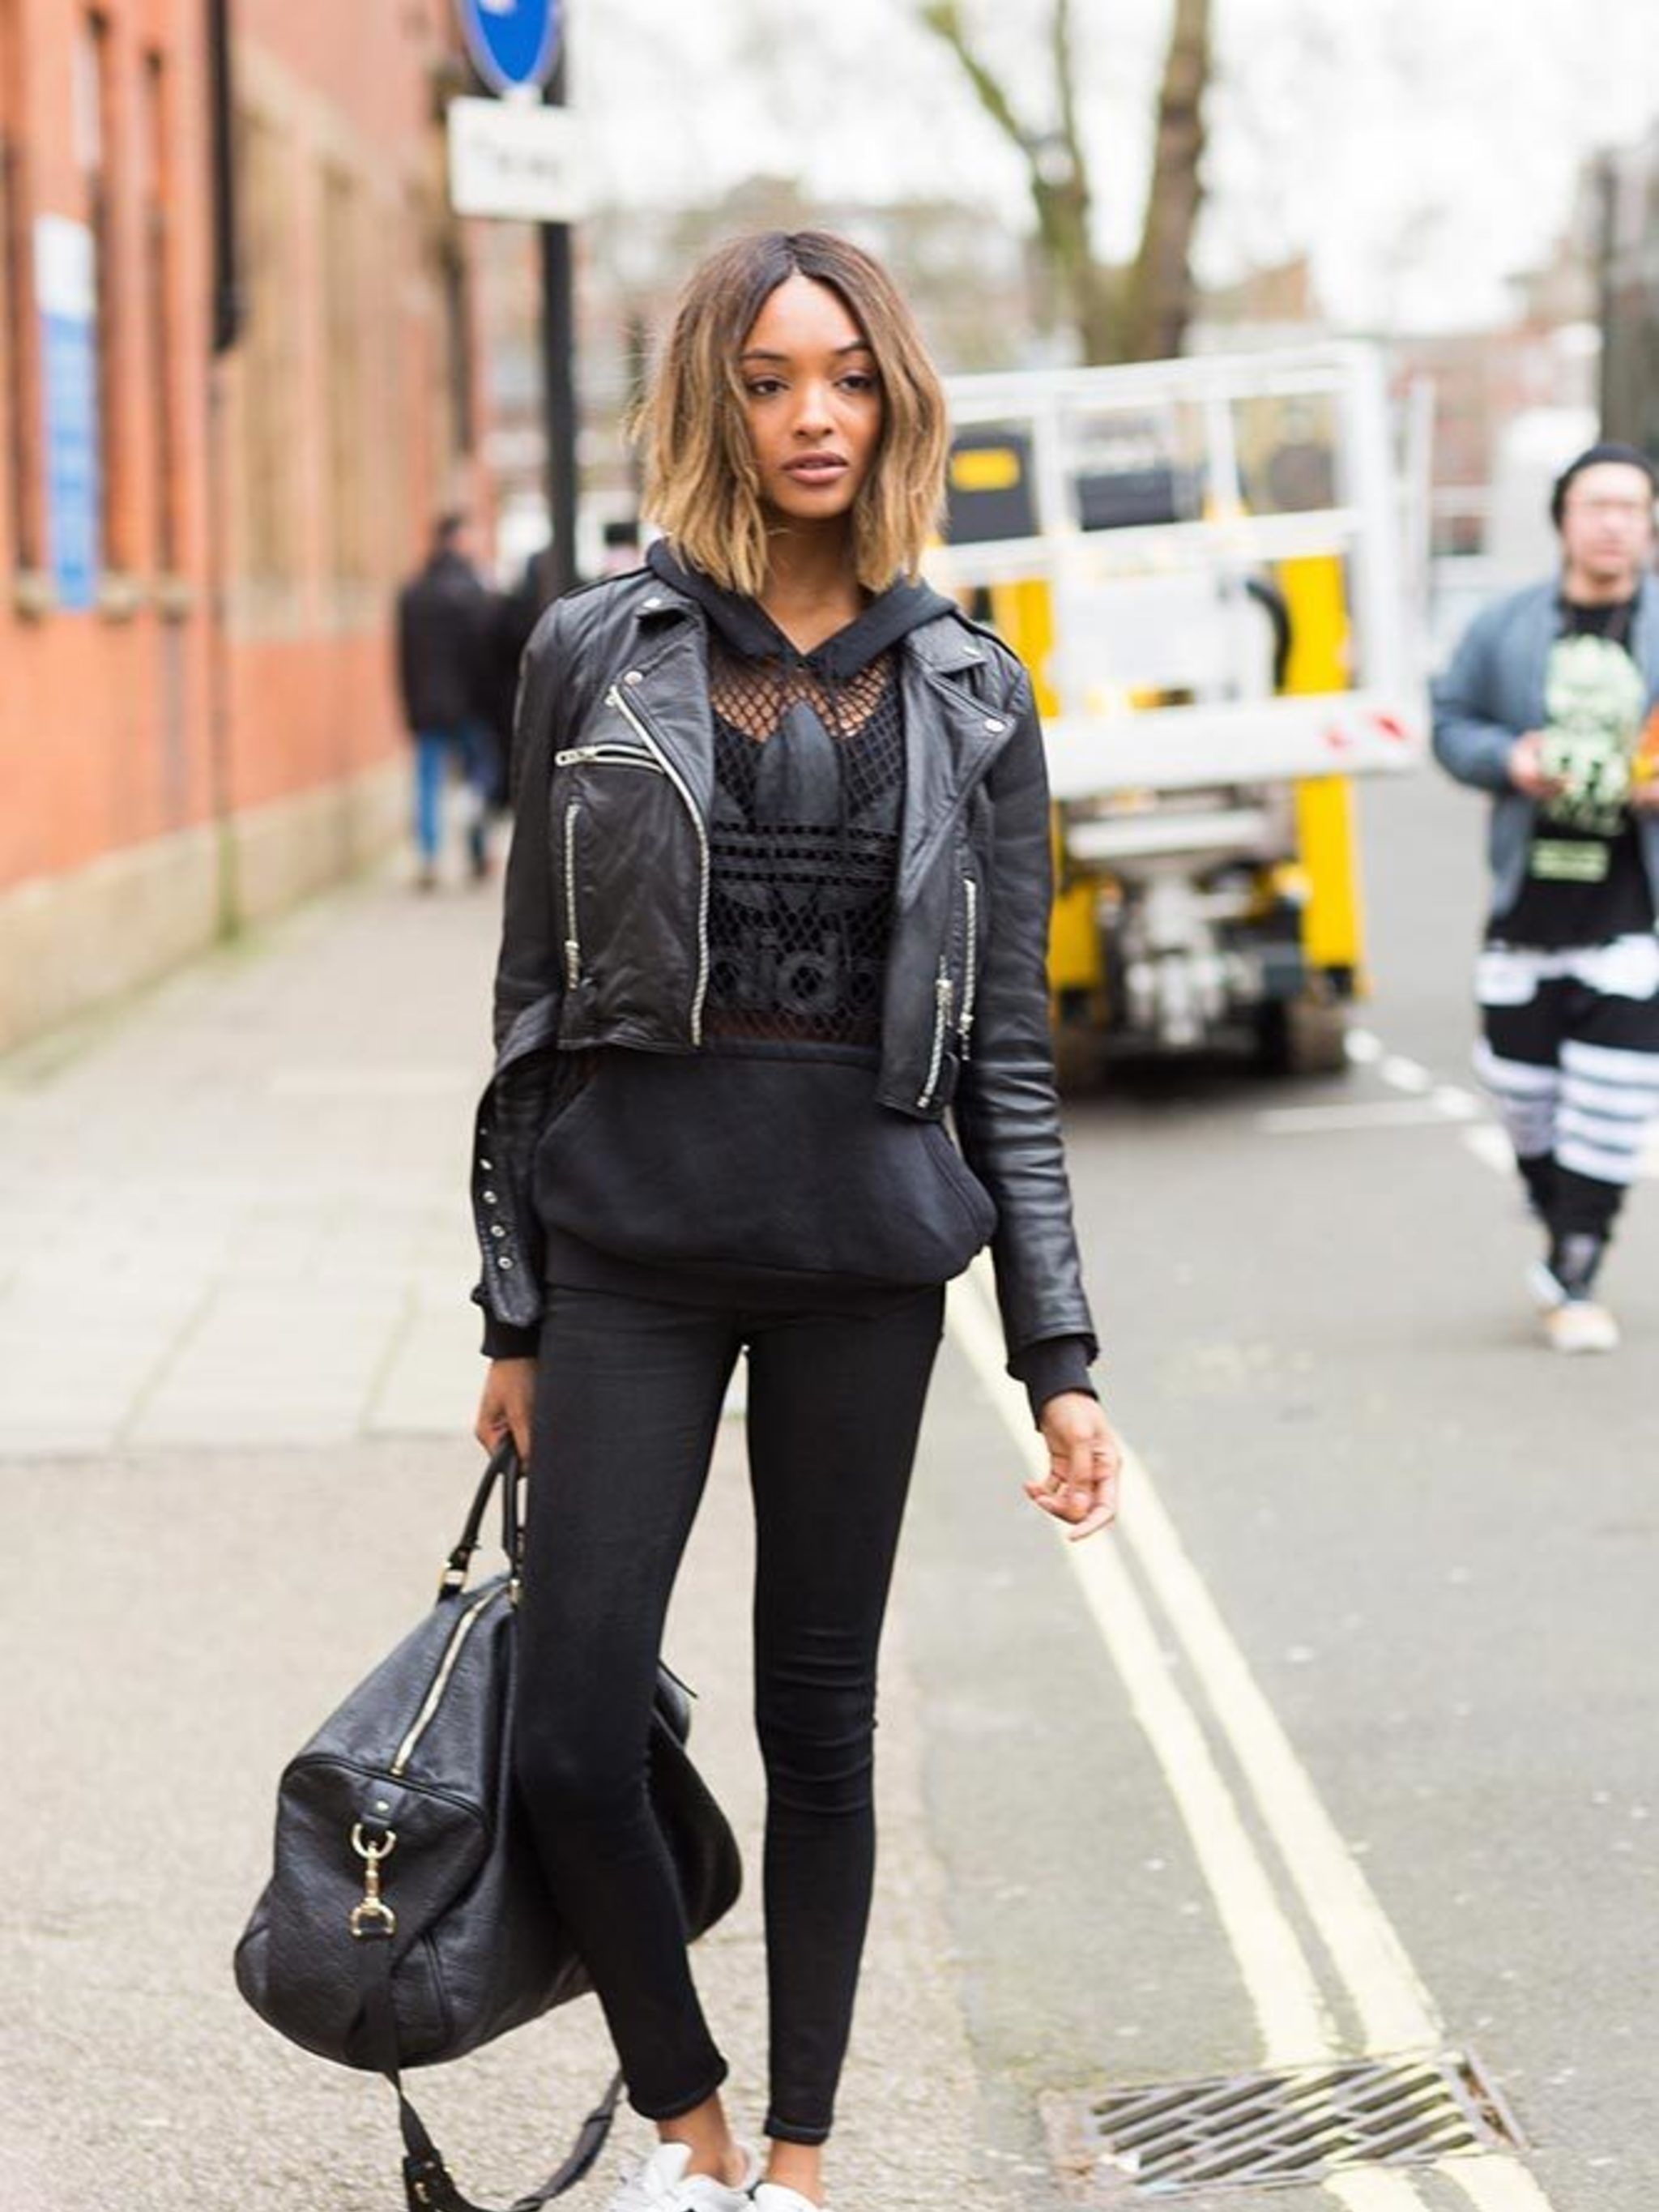 Image result for victoria secret models street style